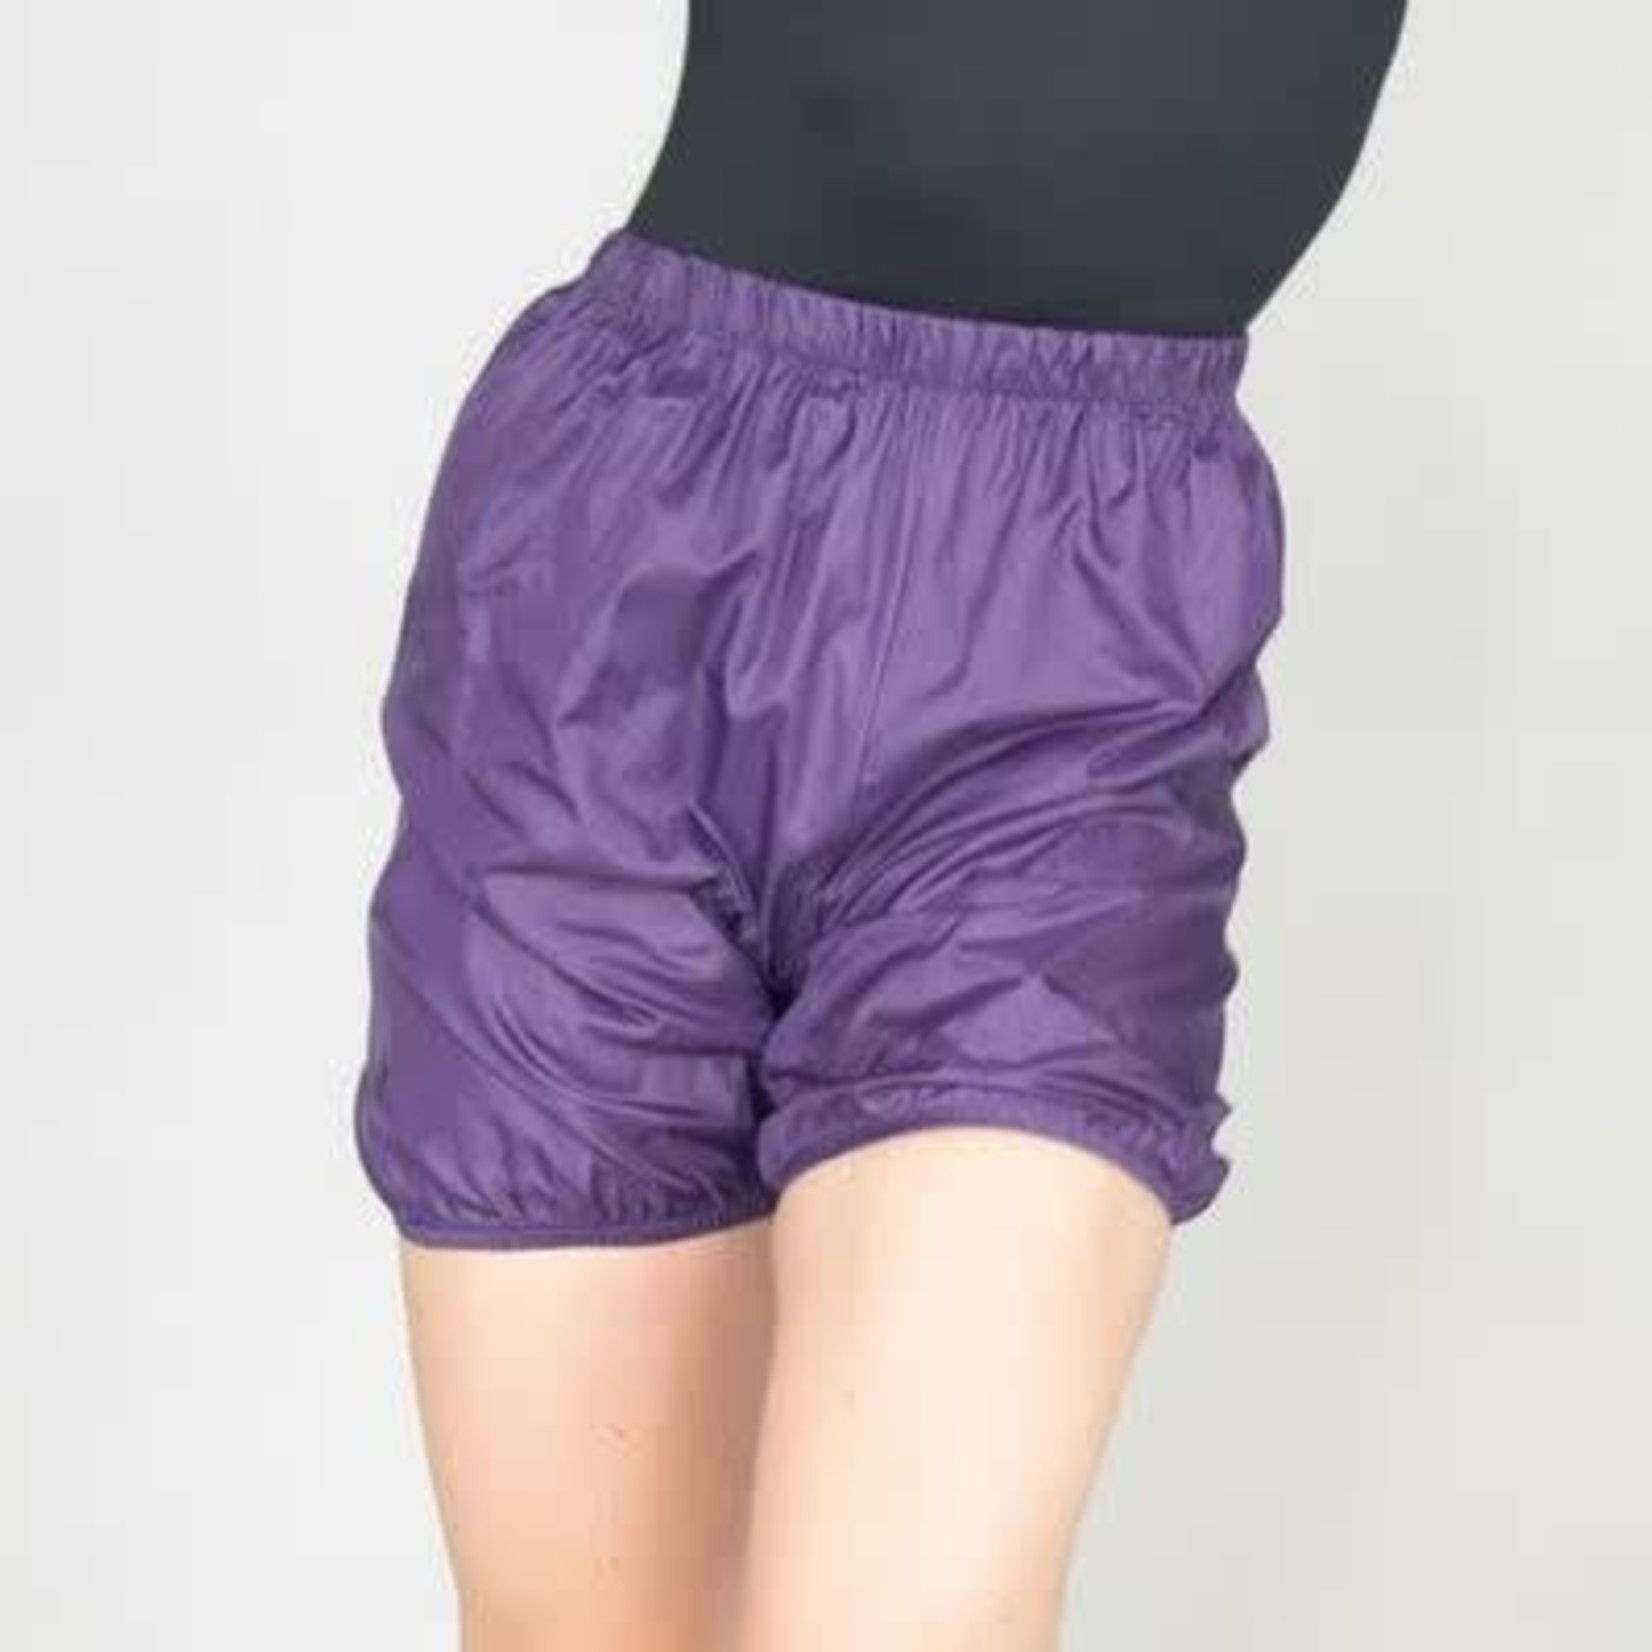 Body Wrappers Body Wrappers 046 Child Warm-up Bloomers Shorts